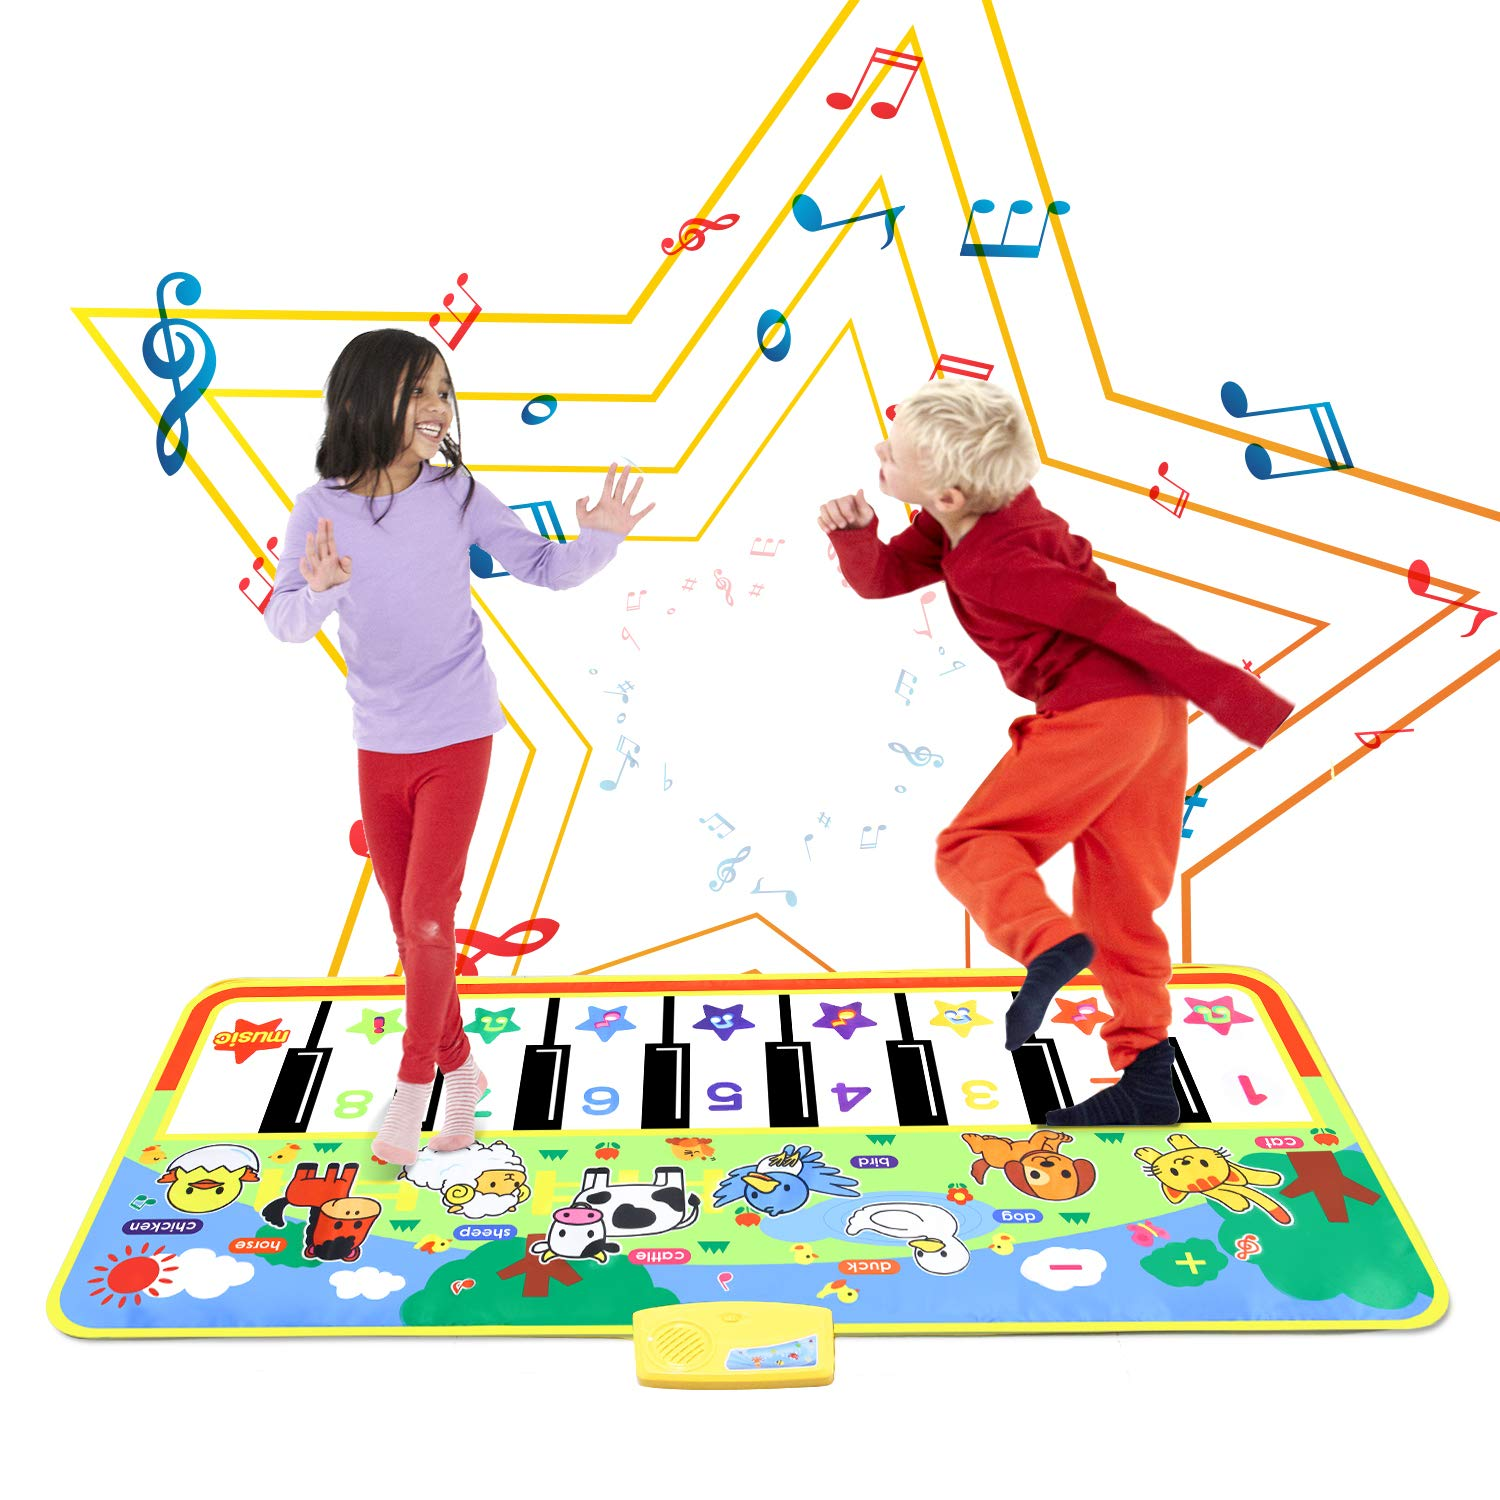 Musical Piano Mat, Keyboard Dancing Play Mat with 8 Kinds of Animal Sounds, Early Educational Learning Toy for Toddlers Kids Children (Large 52.0 x 23.6 inches)